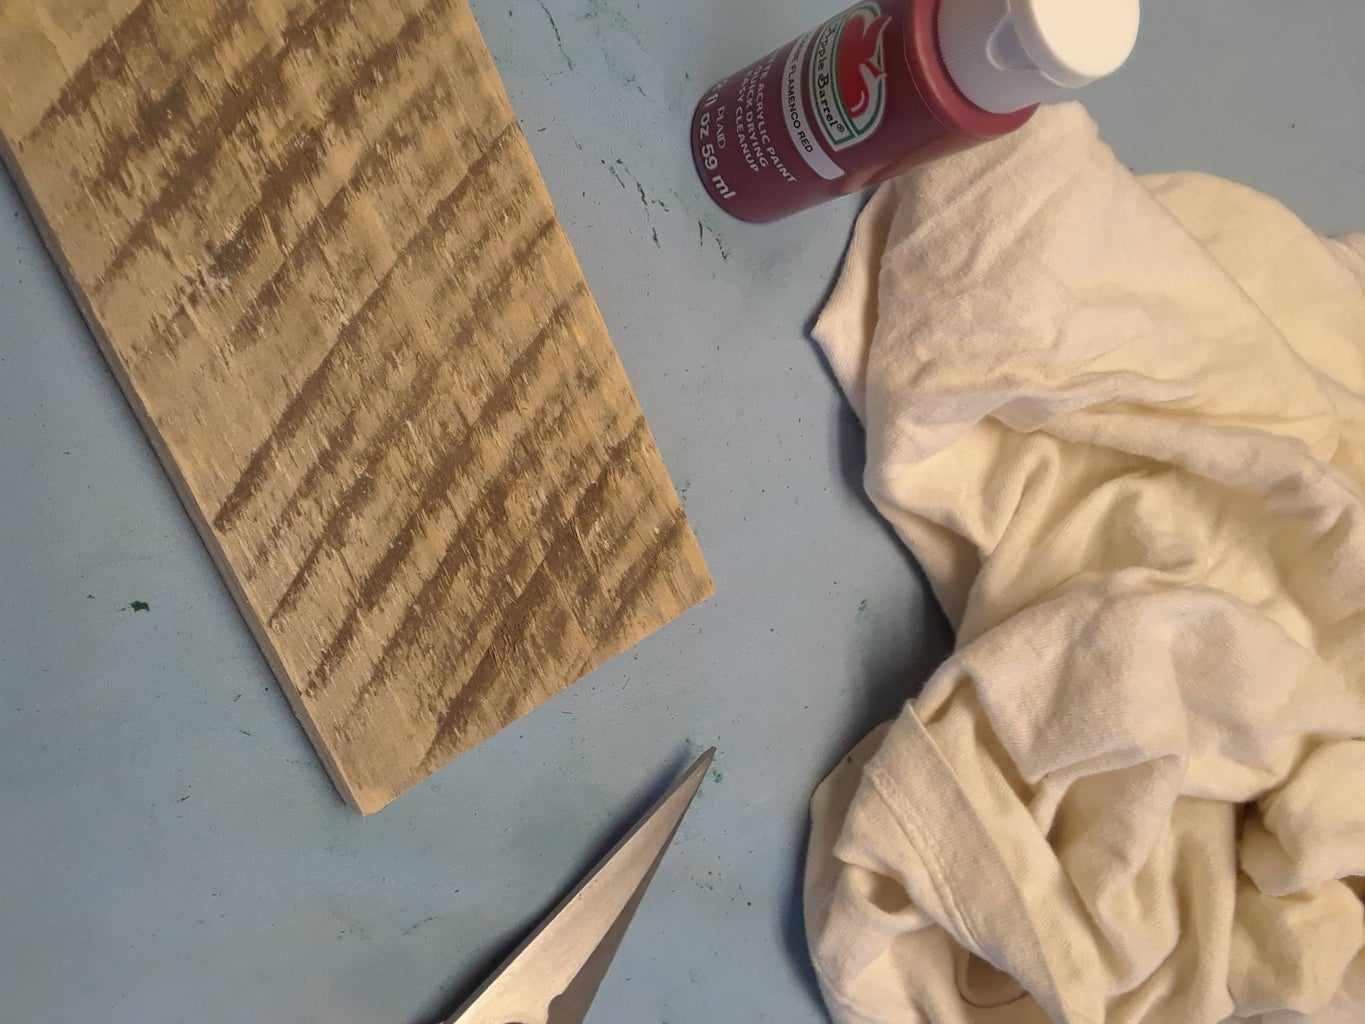 Painting the Pieces